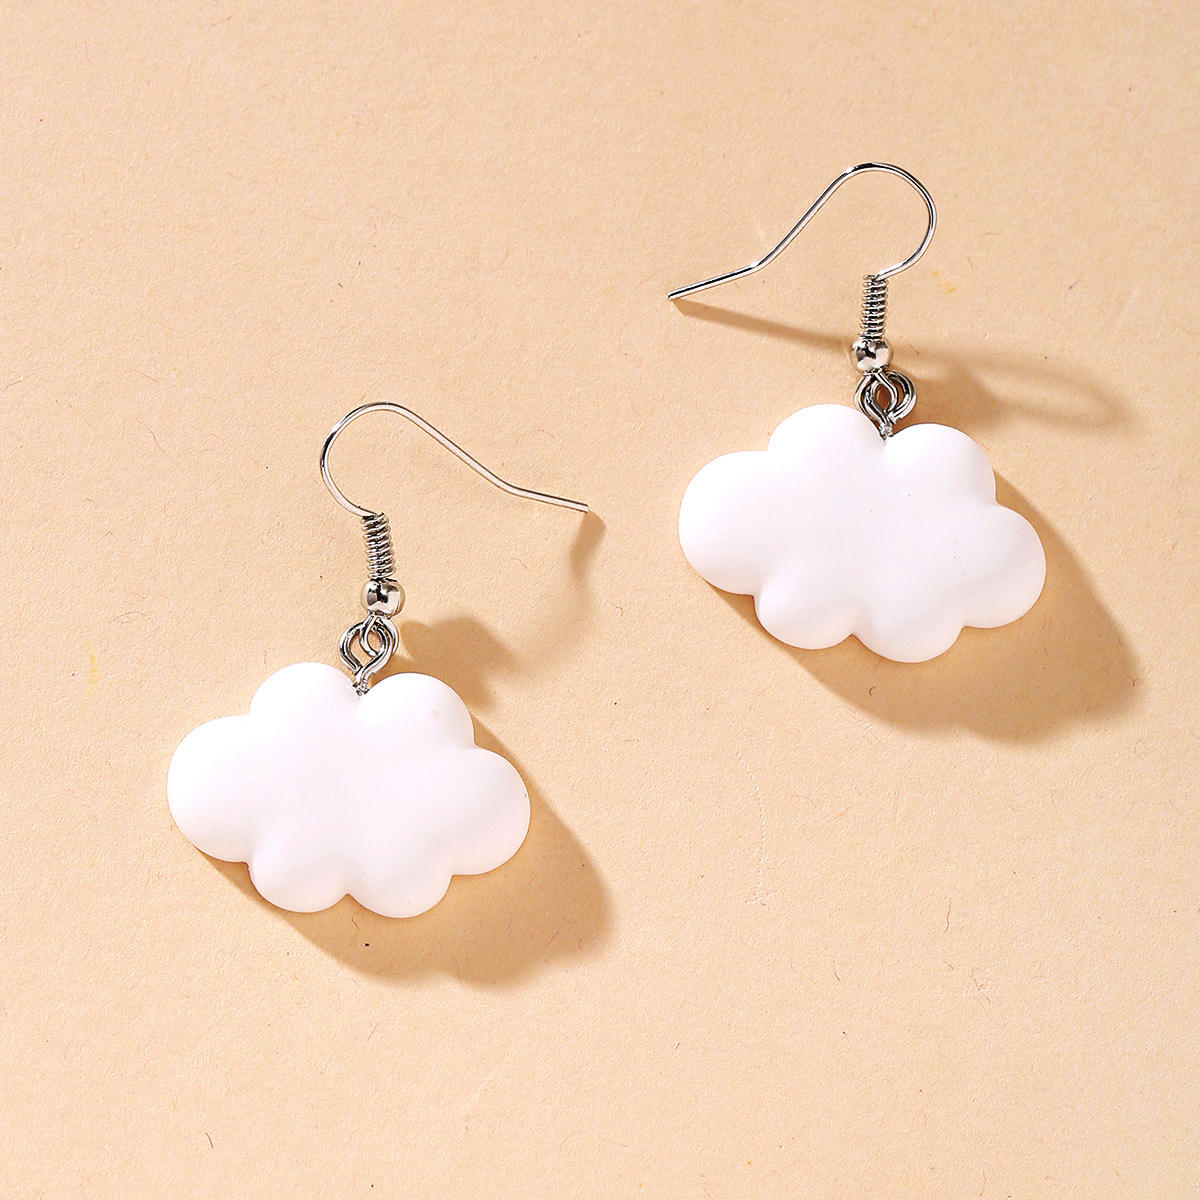 Wholesale Fashion Women Designs Sweet Dangle Trendy Making Kit Charms DIY Cute Colorful Plastic White Cloud Earrings